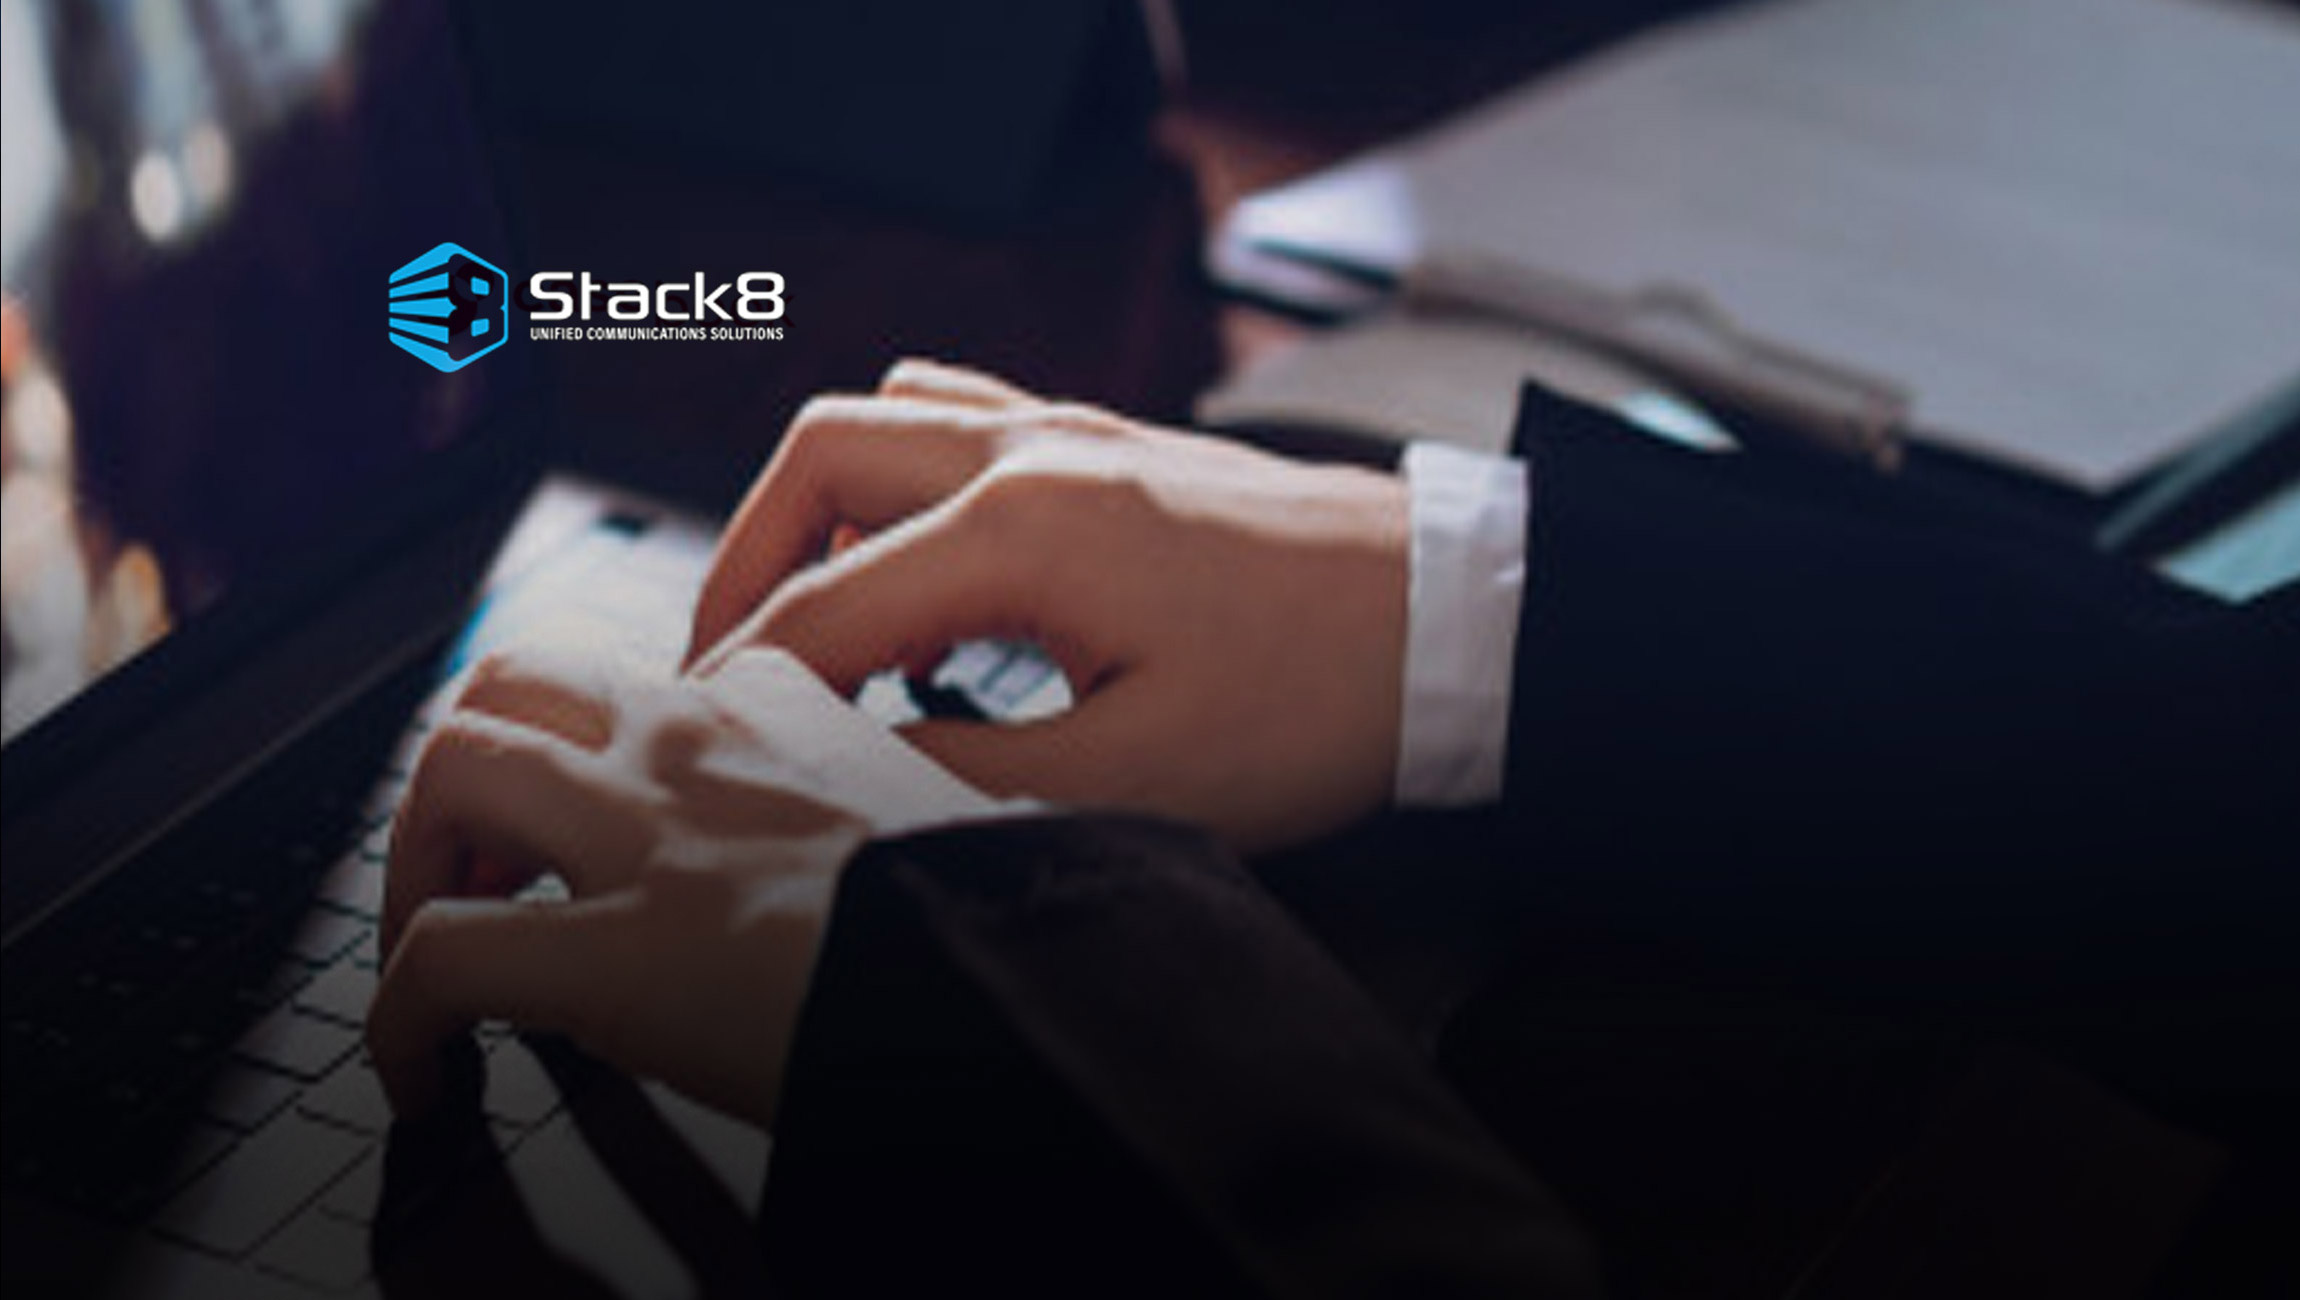 Stack8 Announces Upcoming Major Release of SMACS Unified Communications Management Platform Designed to Manage, Automate and Control UC platforms Including Cisco, Microsoft, 8x8, RingCentral and More